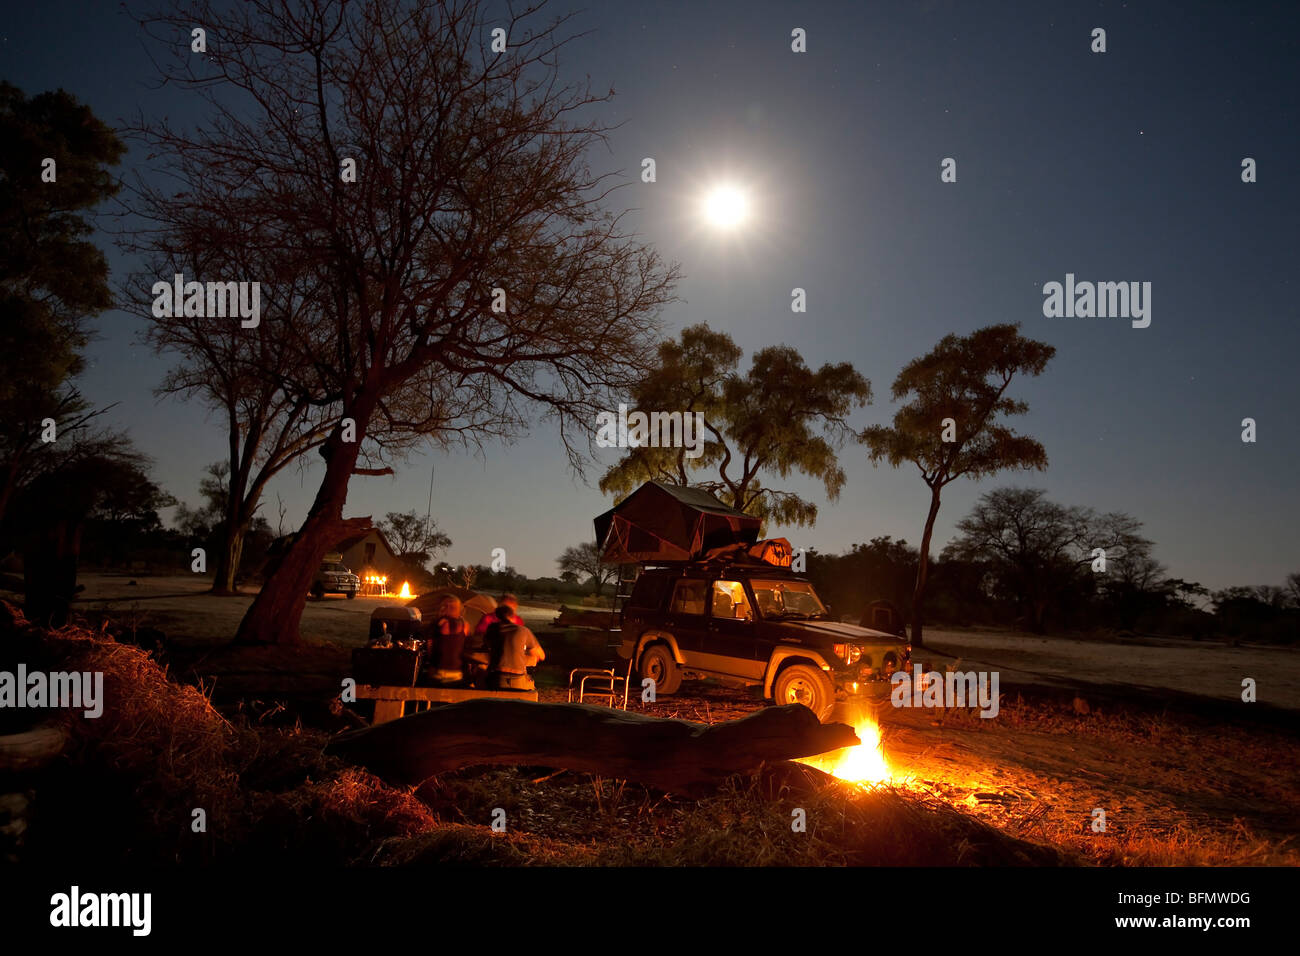 Botswana, Savuti. A family enjoys their meal by the fire, with the expedition 4x4 in the background. - Stock Image